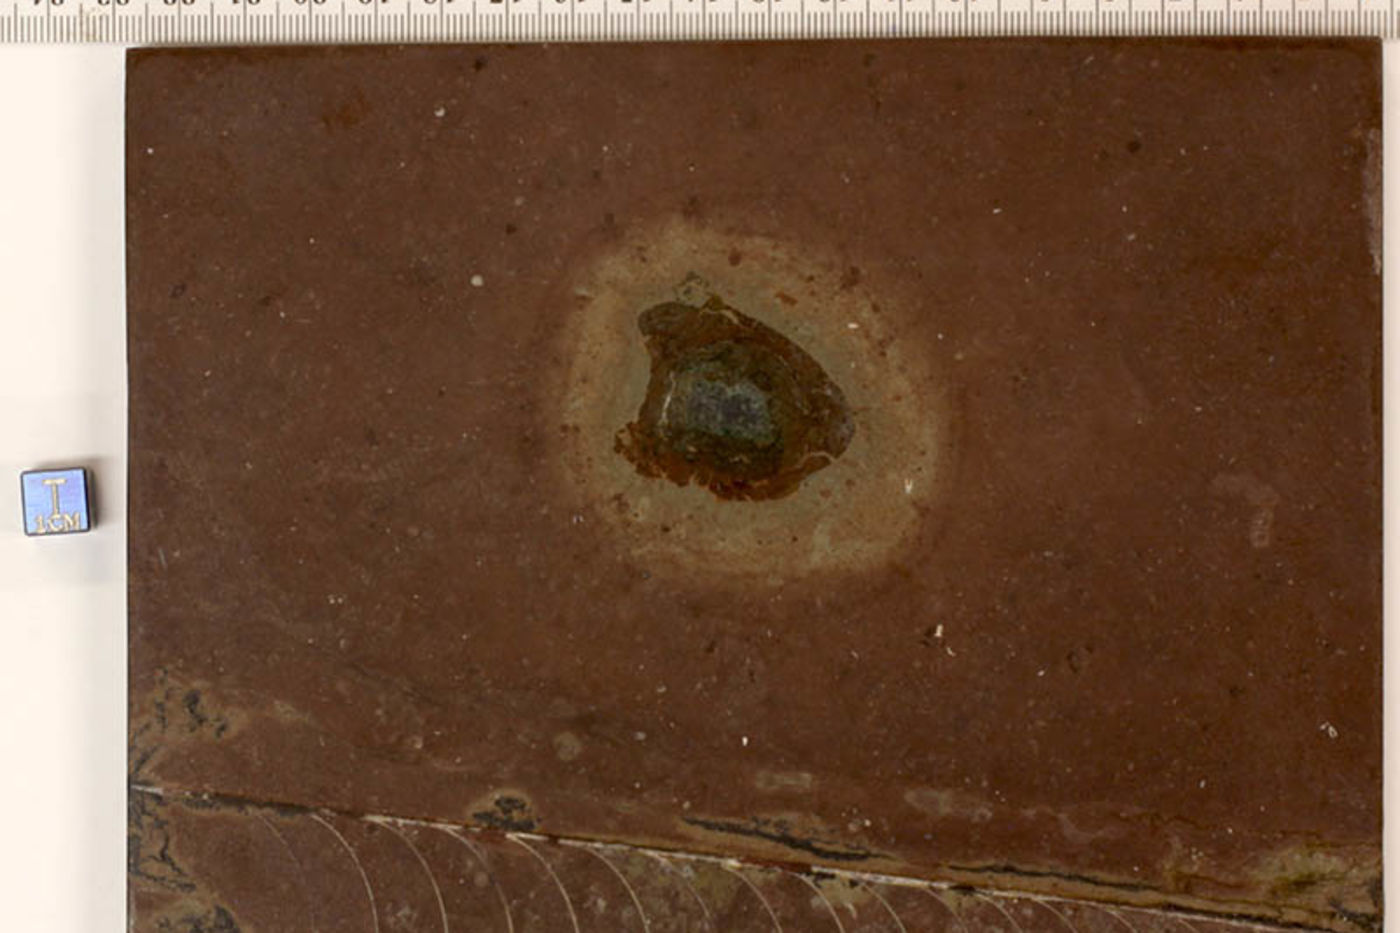 A square piece of red stone with a dark imprint in the middle and a striped impression along the bottom